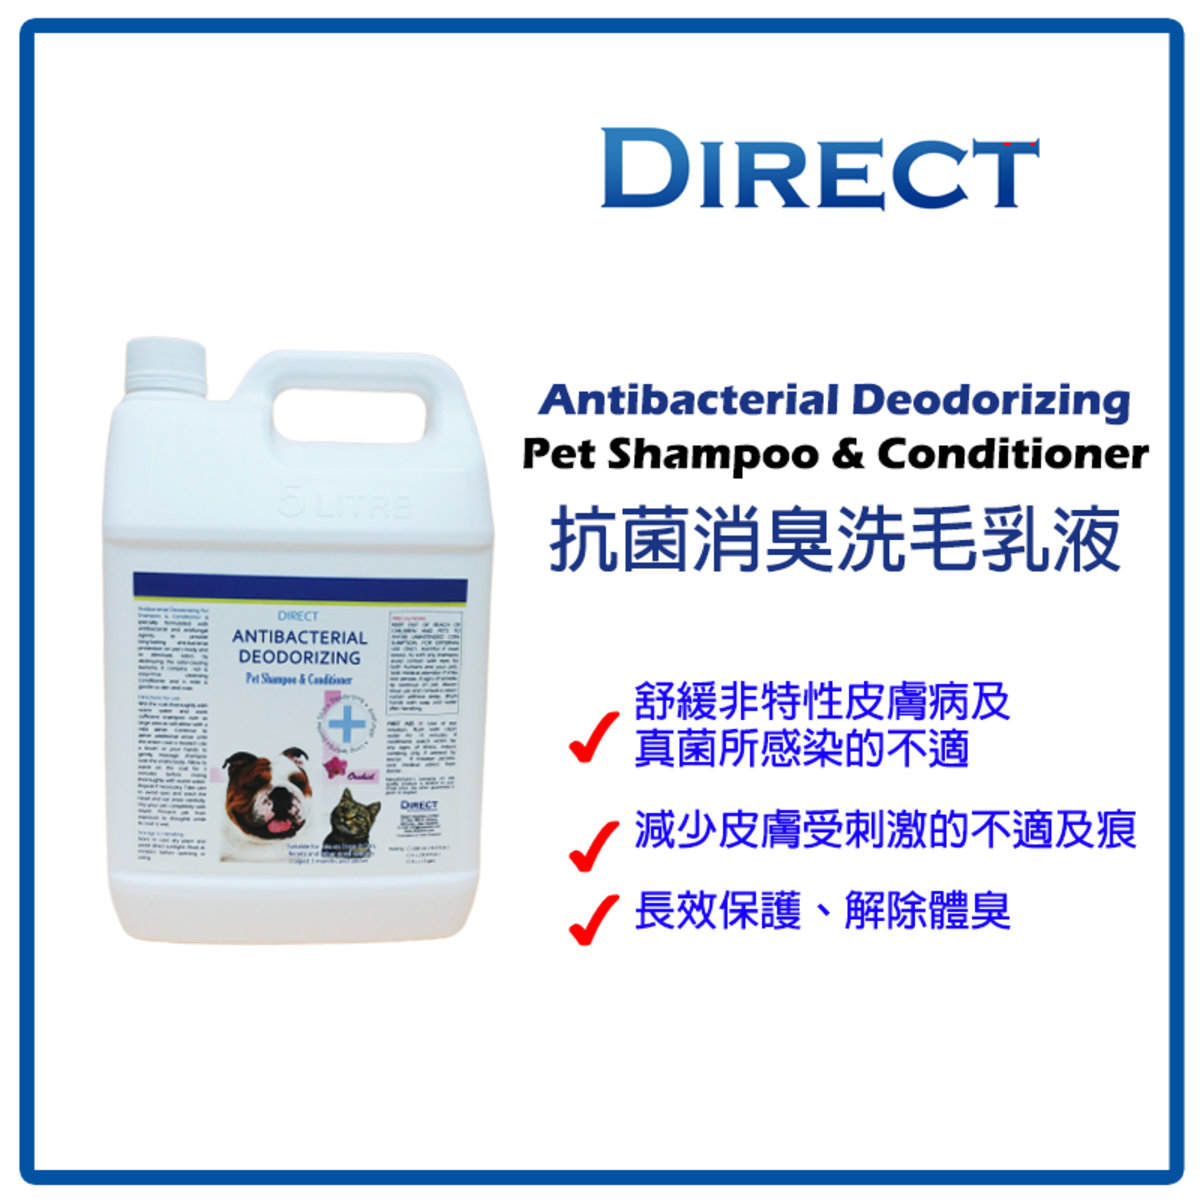 Antibacterial Deodorizing Pet Shampoo and Conditioner 5L